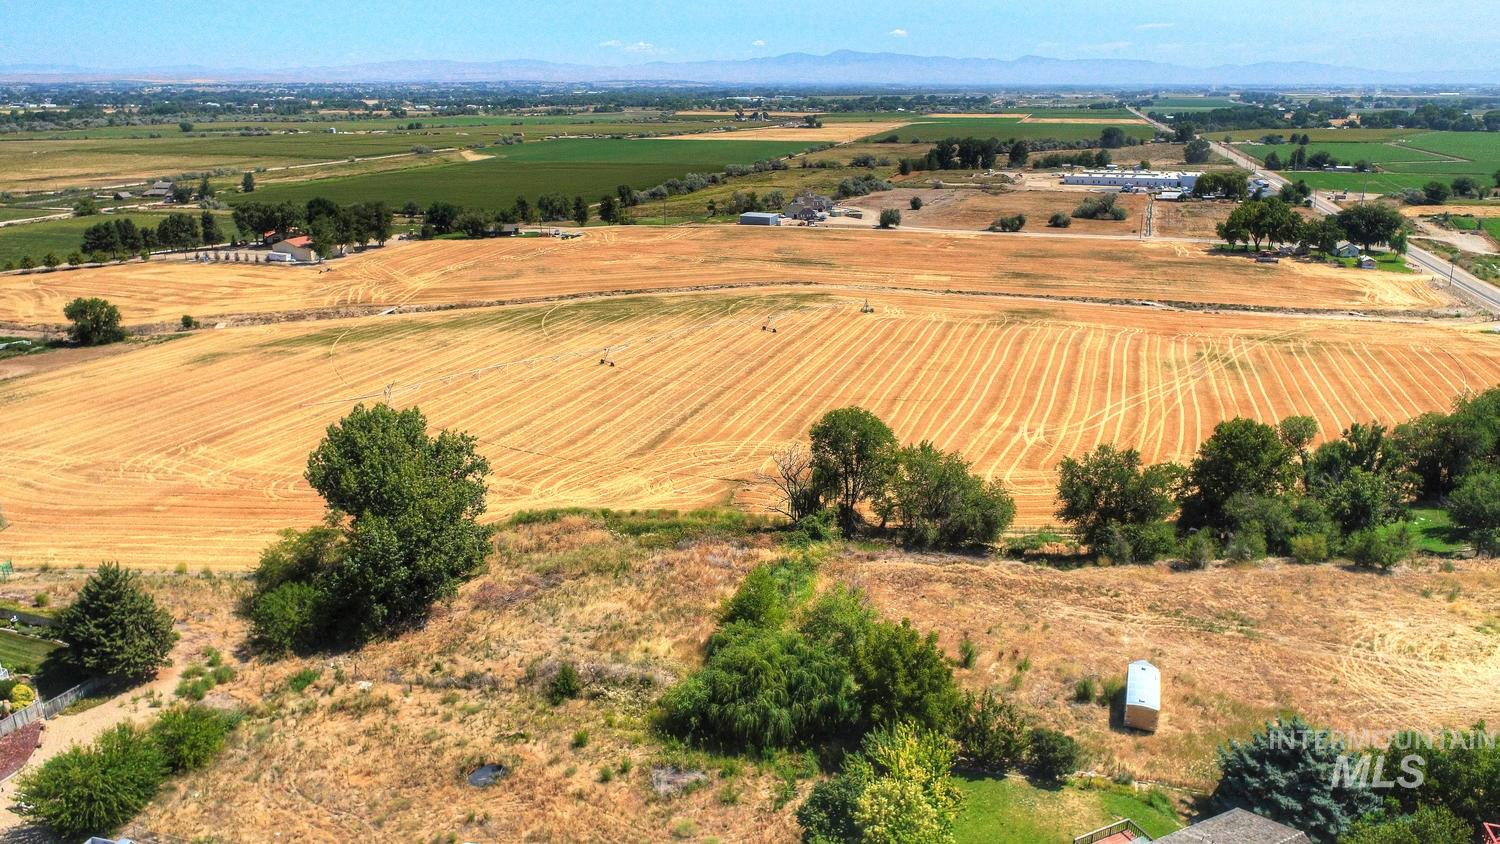 00 Lincoln, Caldwell, Idaho 83605-2539, Land For Sale, Price $119,900, 98785175